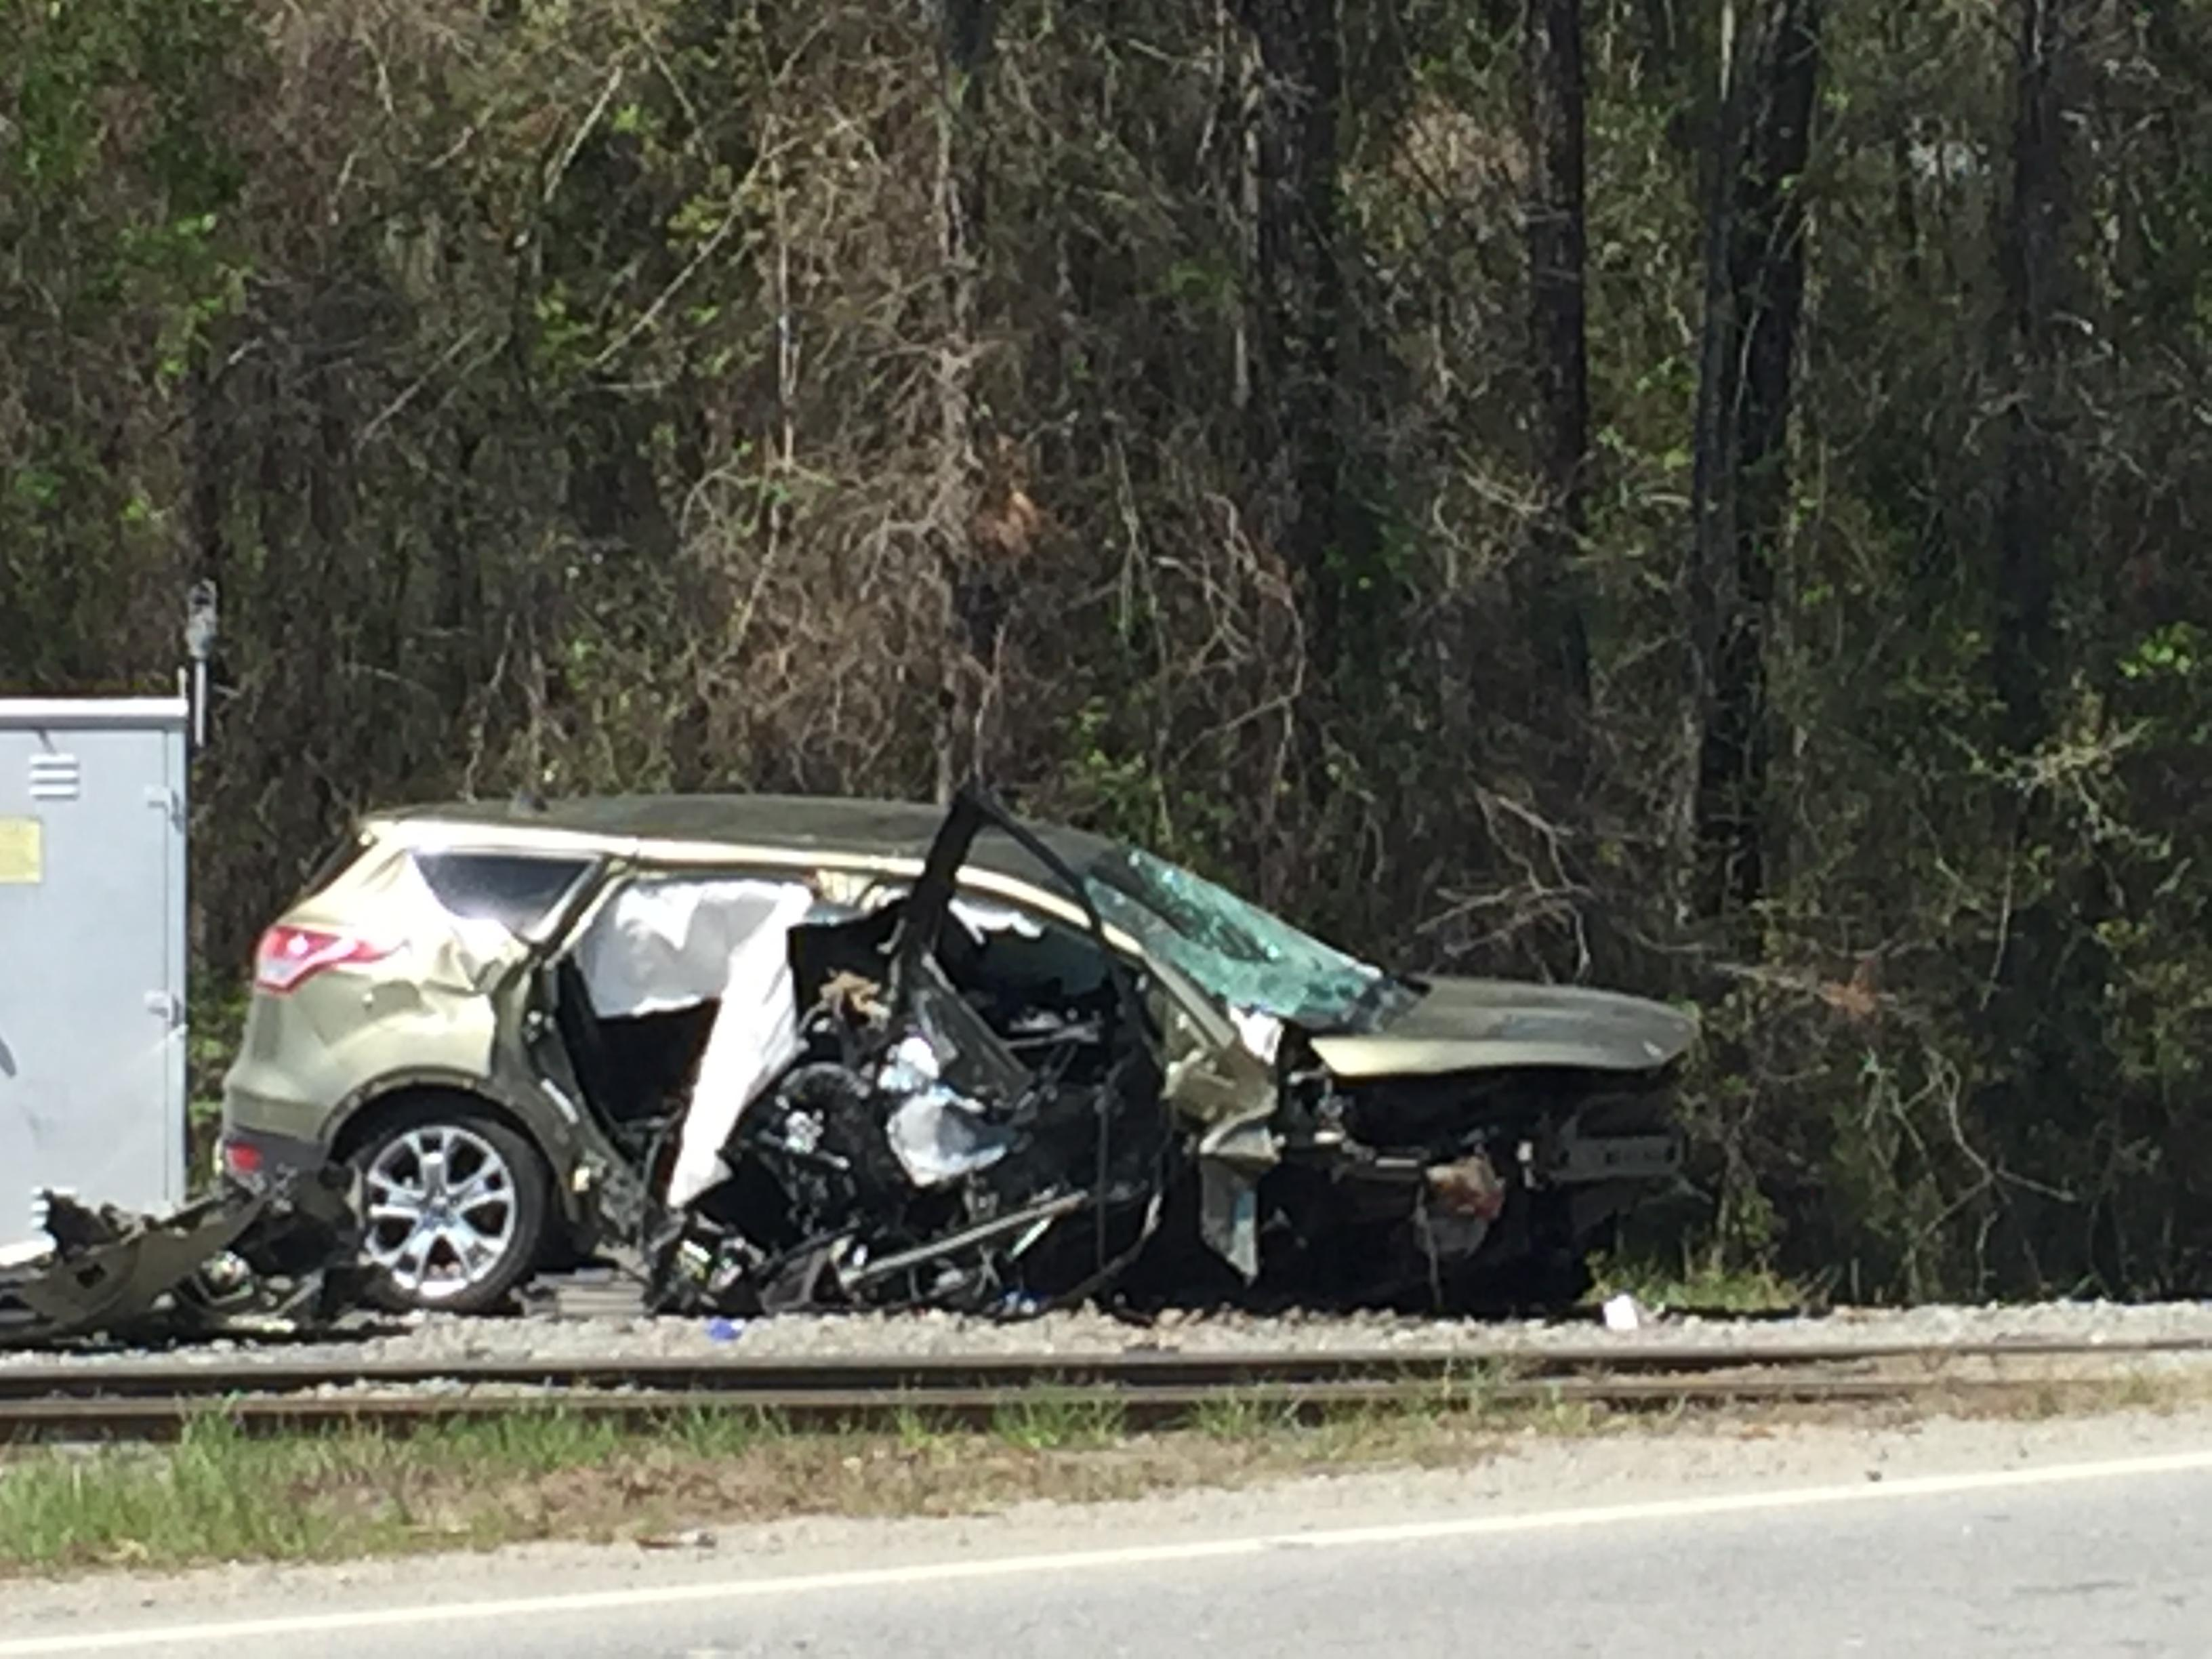 A car crashed near a train track on Highway 49 in Jones County Tuesday afternoon/David Domingue (WGXA)